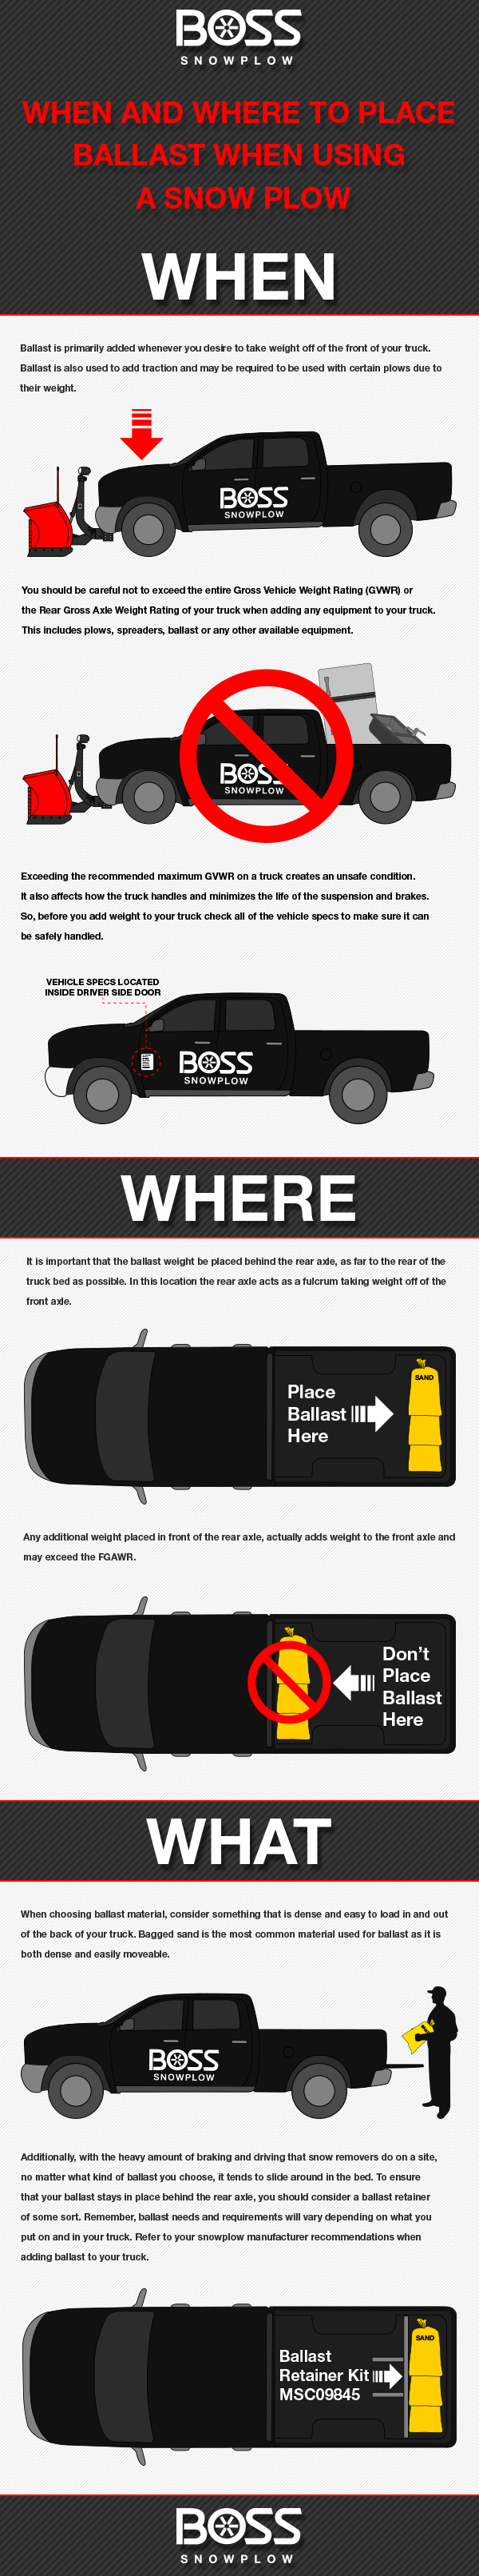 When and Where To Place Ballast When Using A Snow Plow